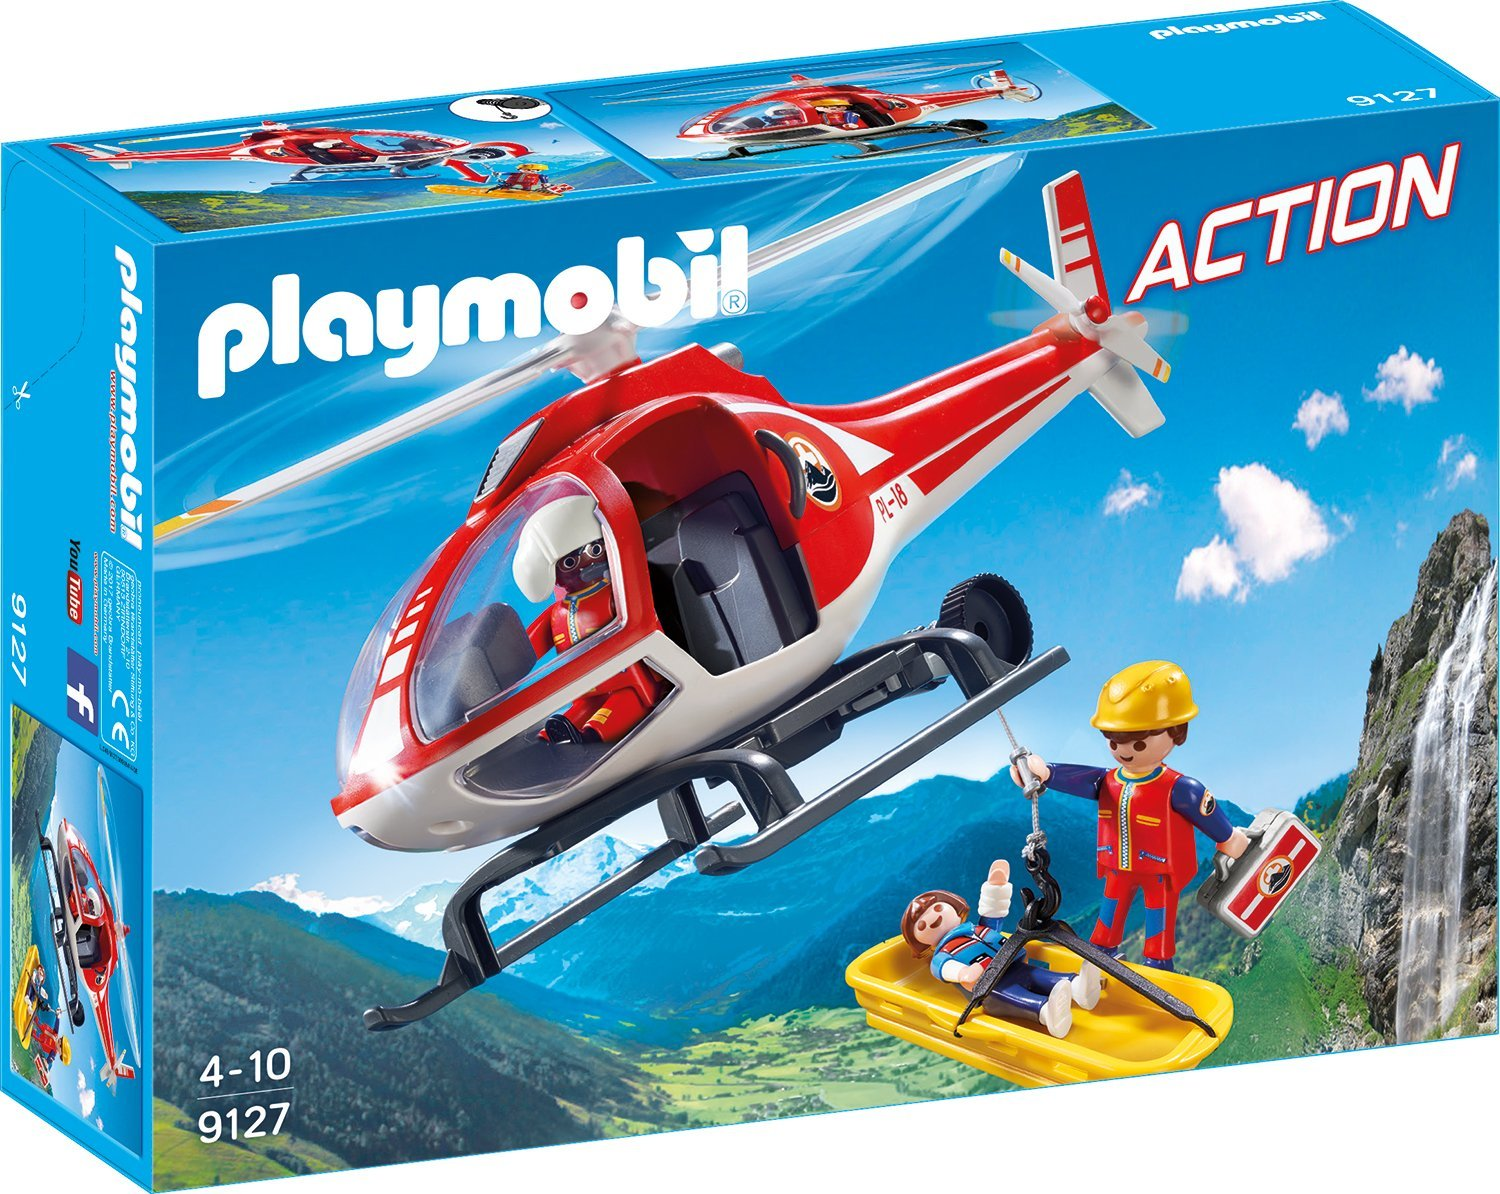 Playmobil Helikopter amazon